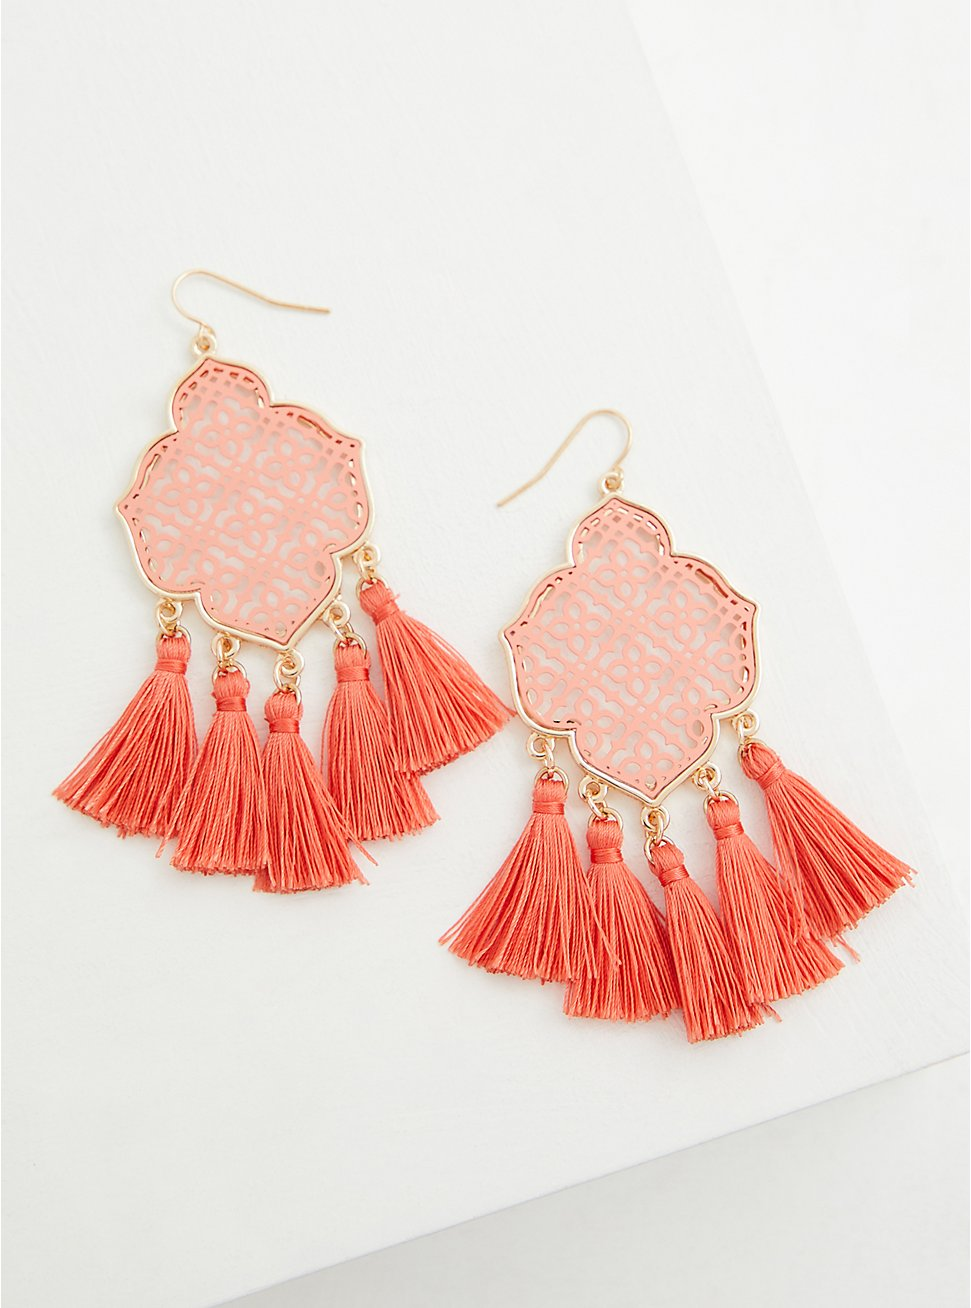 Peach Filigree Tassel Statement Earrings, , hi-res